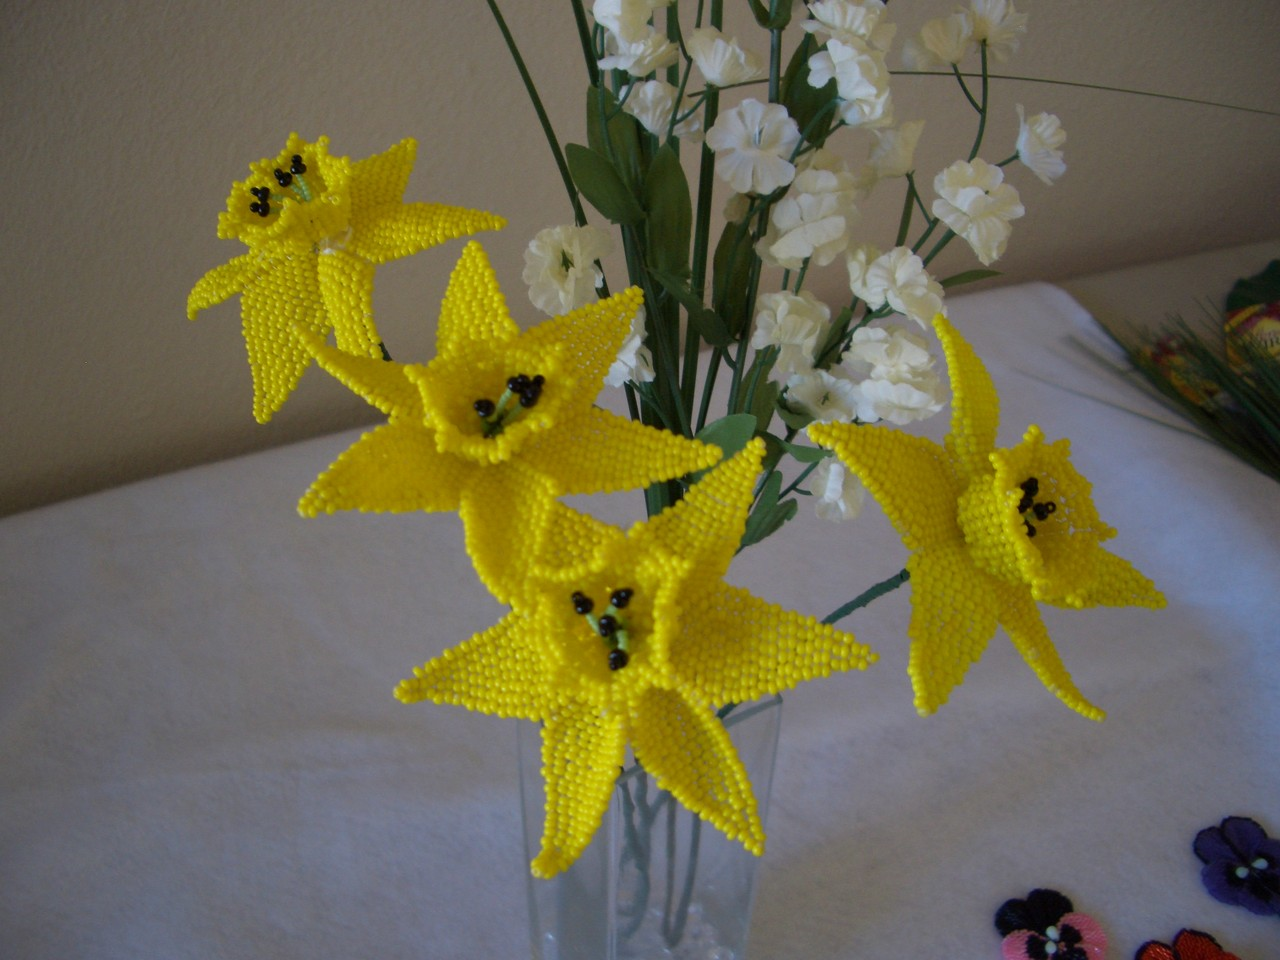 Daffodil Beaded Flower Bouquet Arrangement